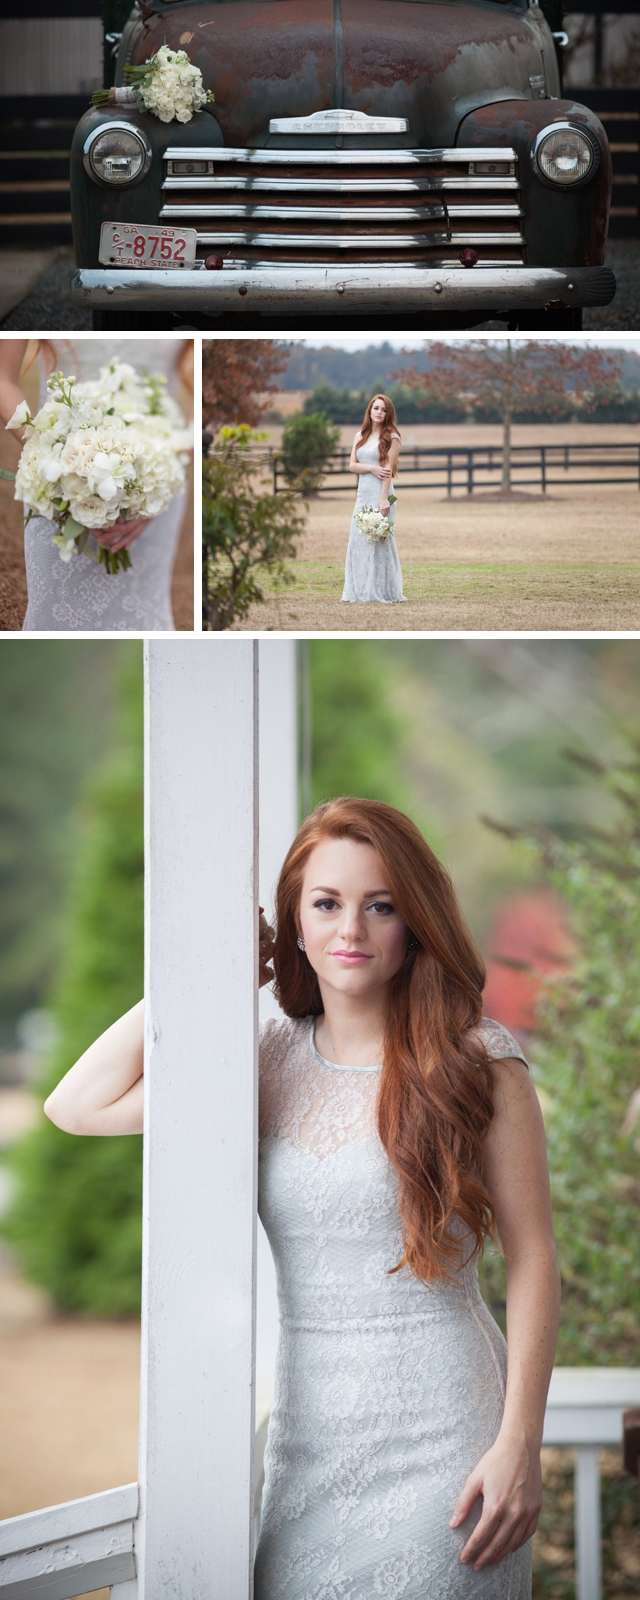 A horse farm bridal session by Leigh+Becca || see more at blog.nearlynewlywed.com